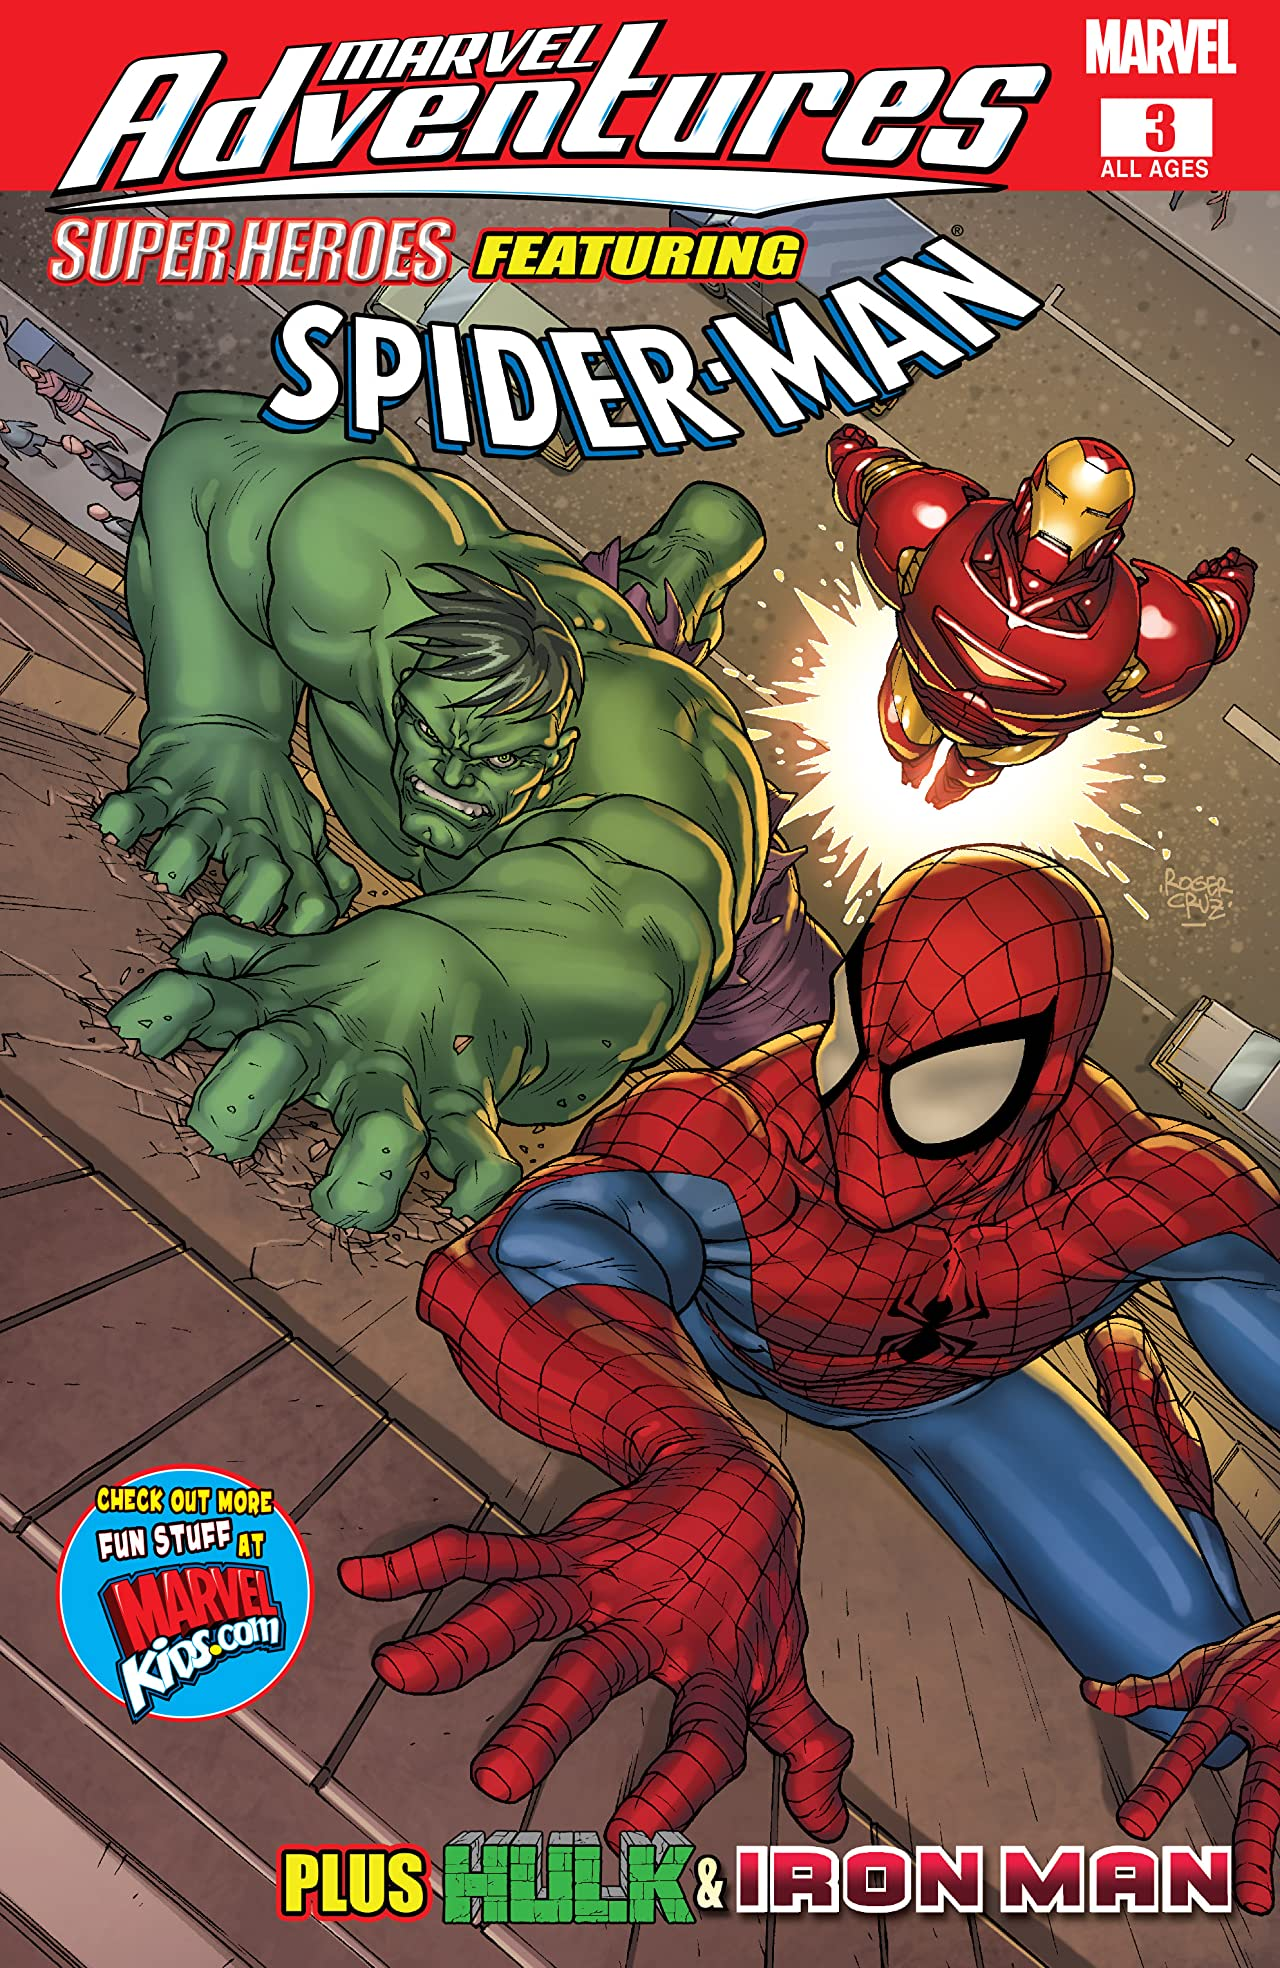 Marvel Adventures: Super Heroes (2008-2010) #3